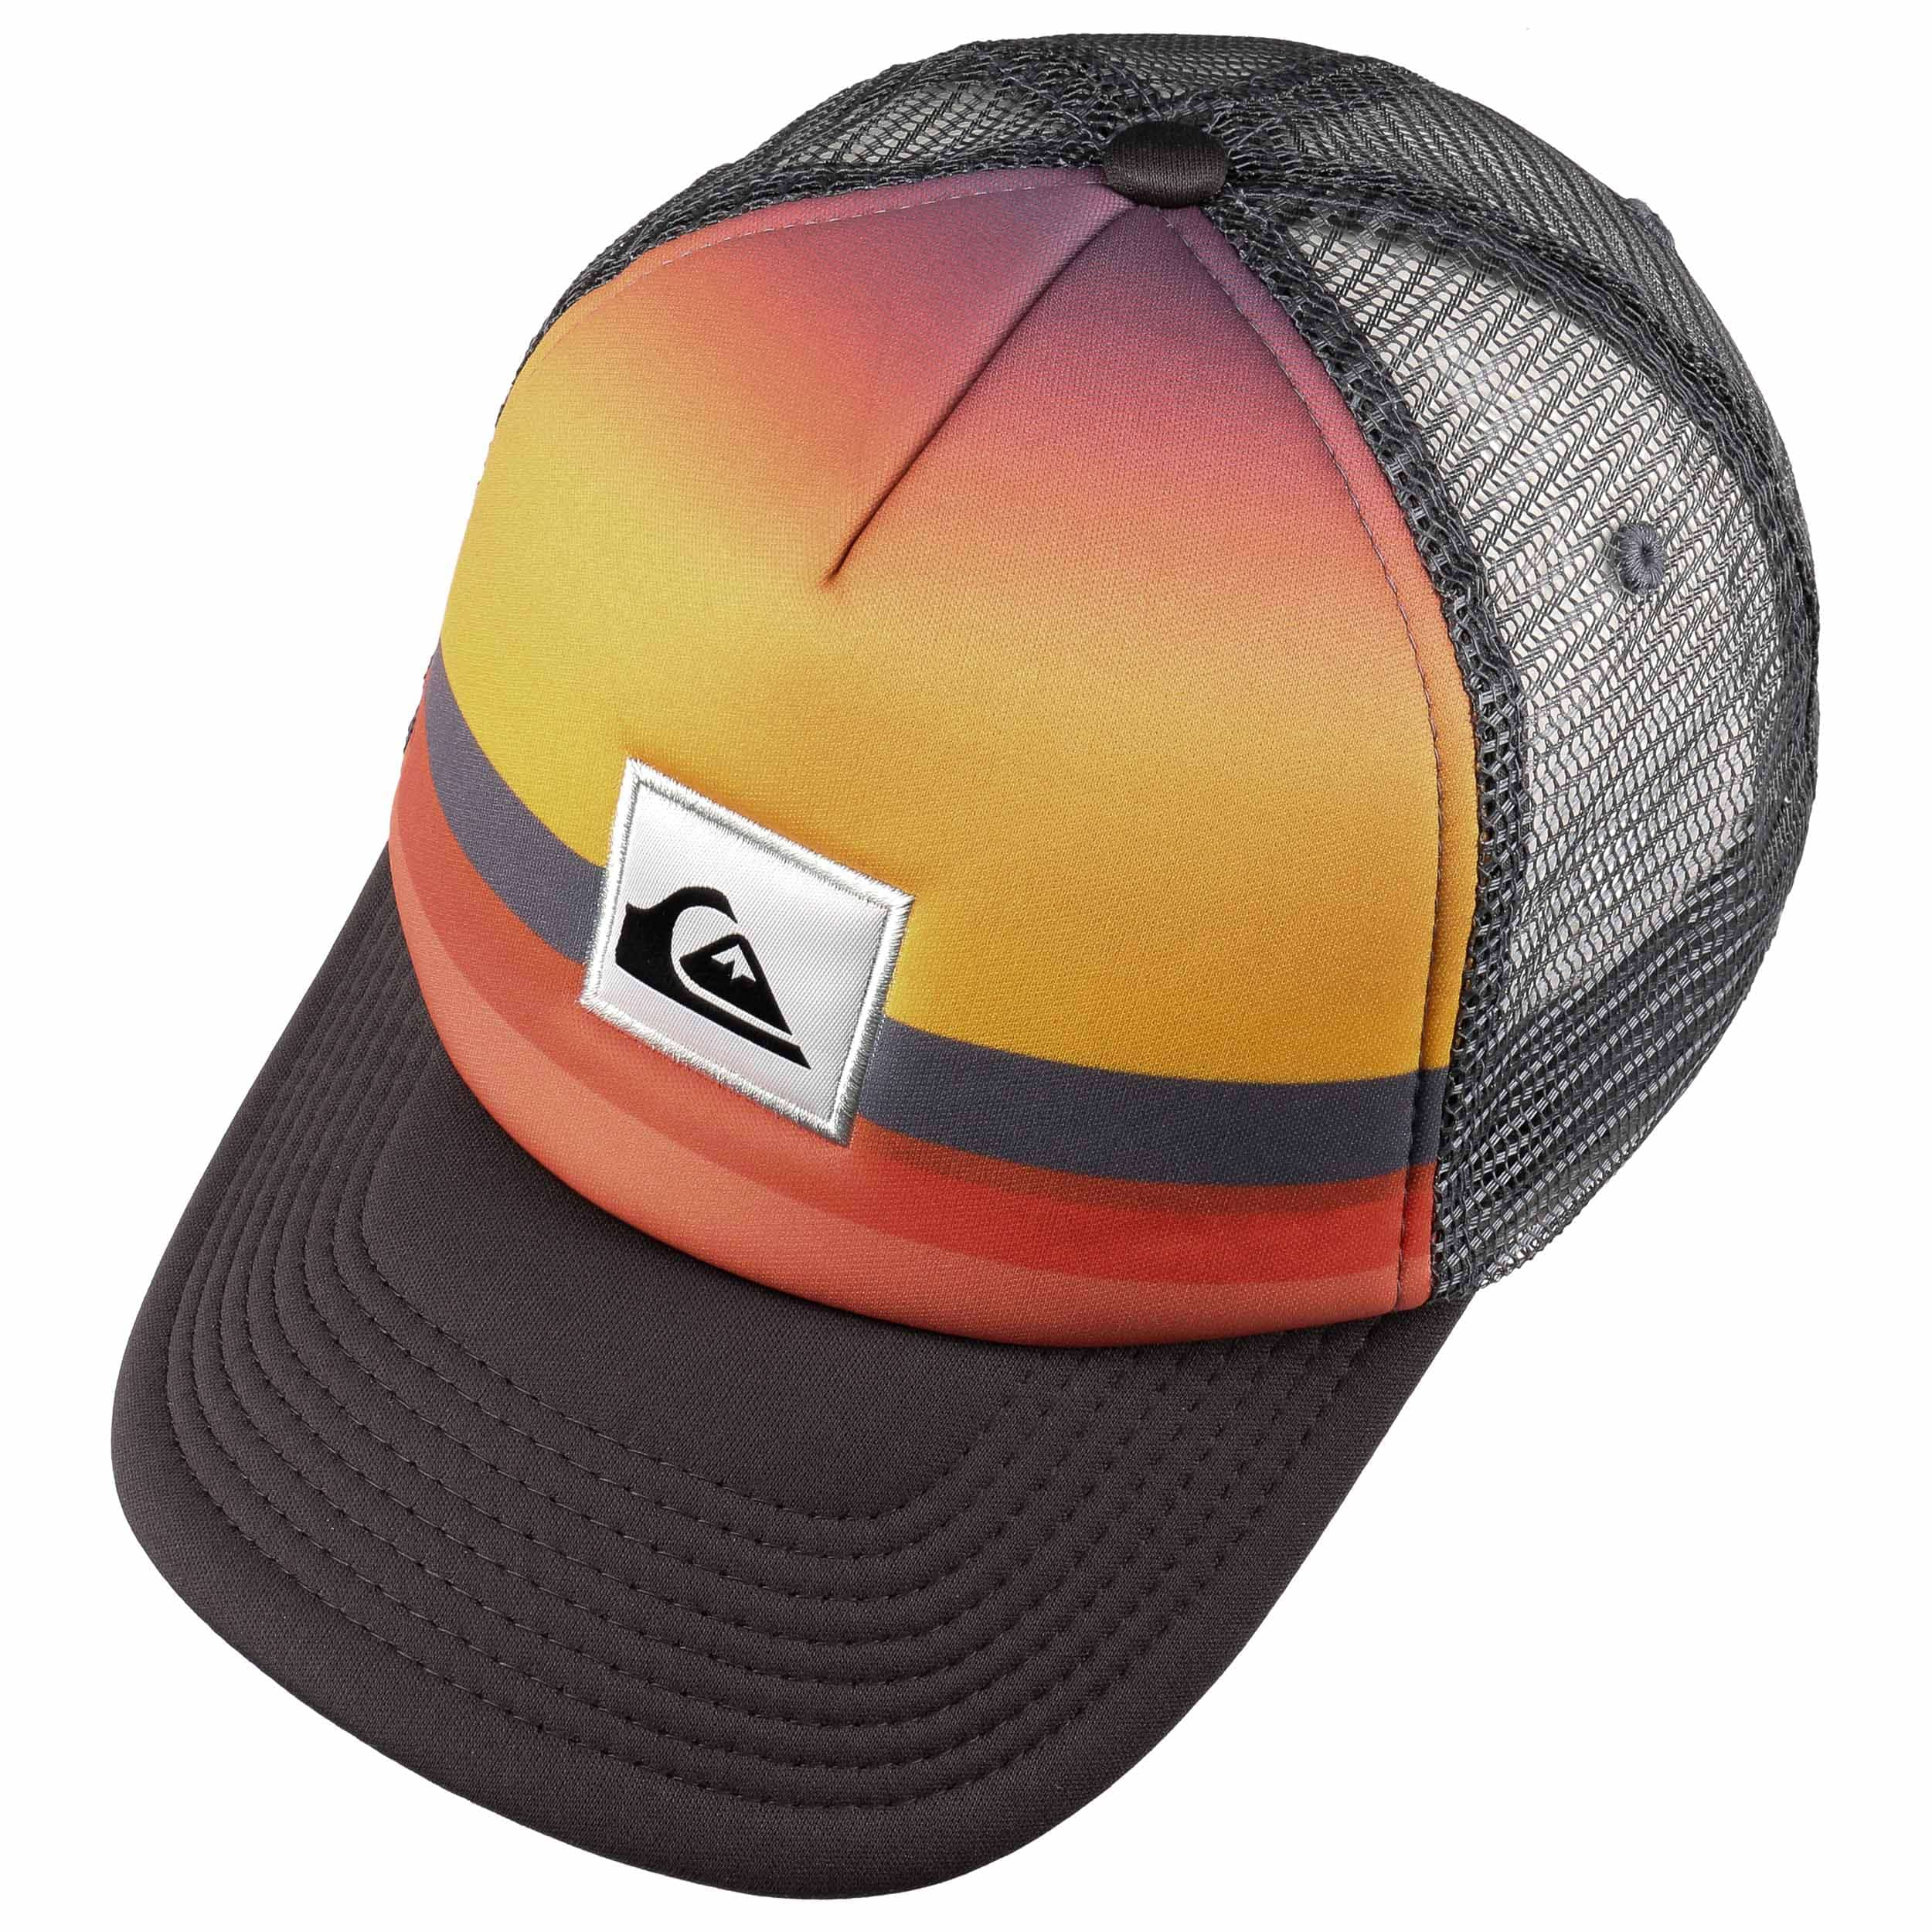 20ff6c647ba743 Sets Coming Youth Trucker Cap by Quiksilver - orange 1 ...